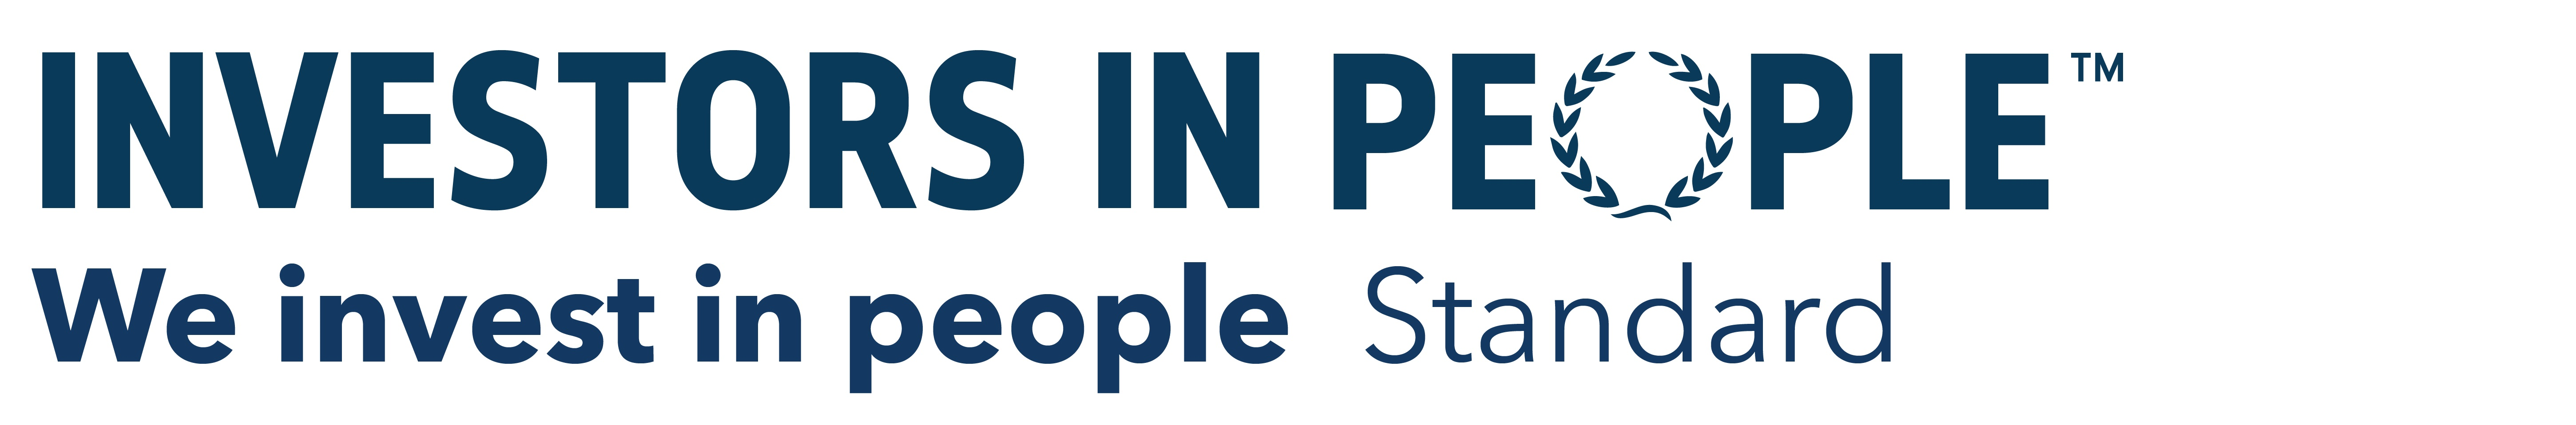 we-invest-in-people-standard-blue - 2019.jpg